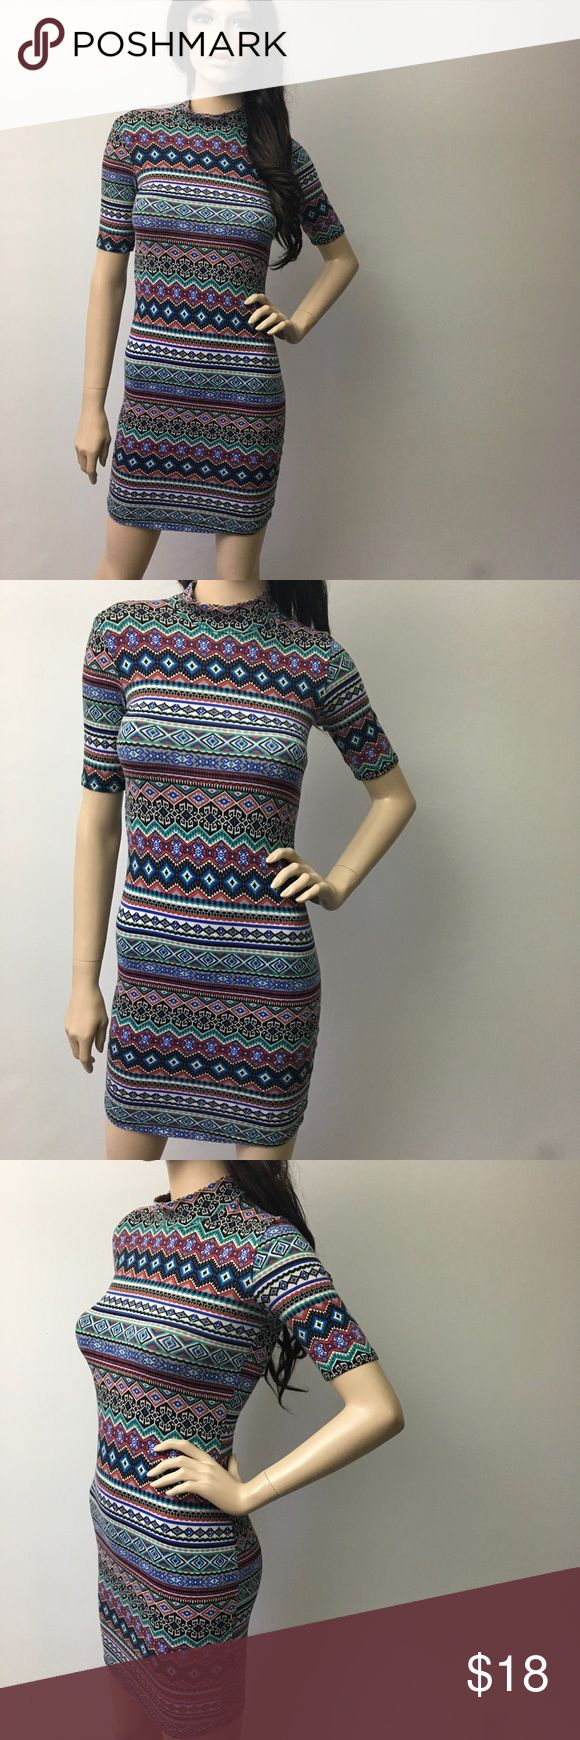 Aztec Bodycon Dress With 🐢 Neck This dress is sexy! Stretchy fabric. Bodycon style. It has a small turtle neck. 😘 Forever 21 Dresses